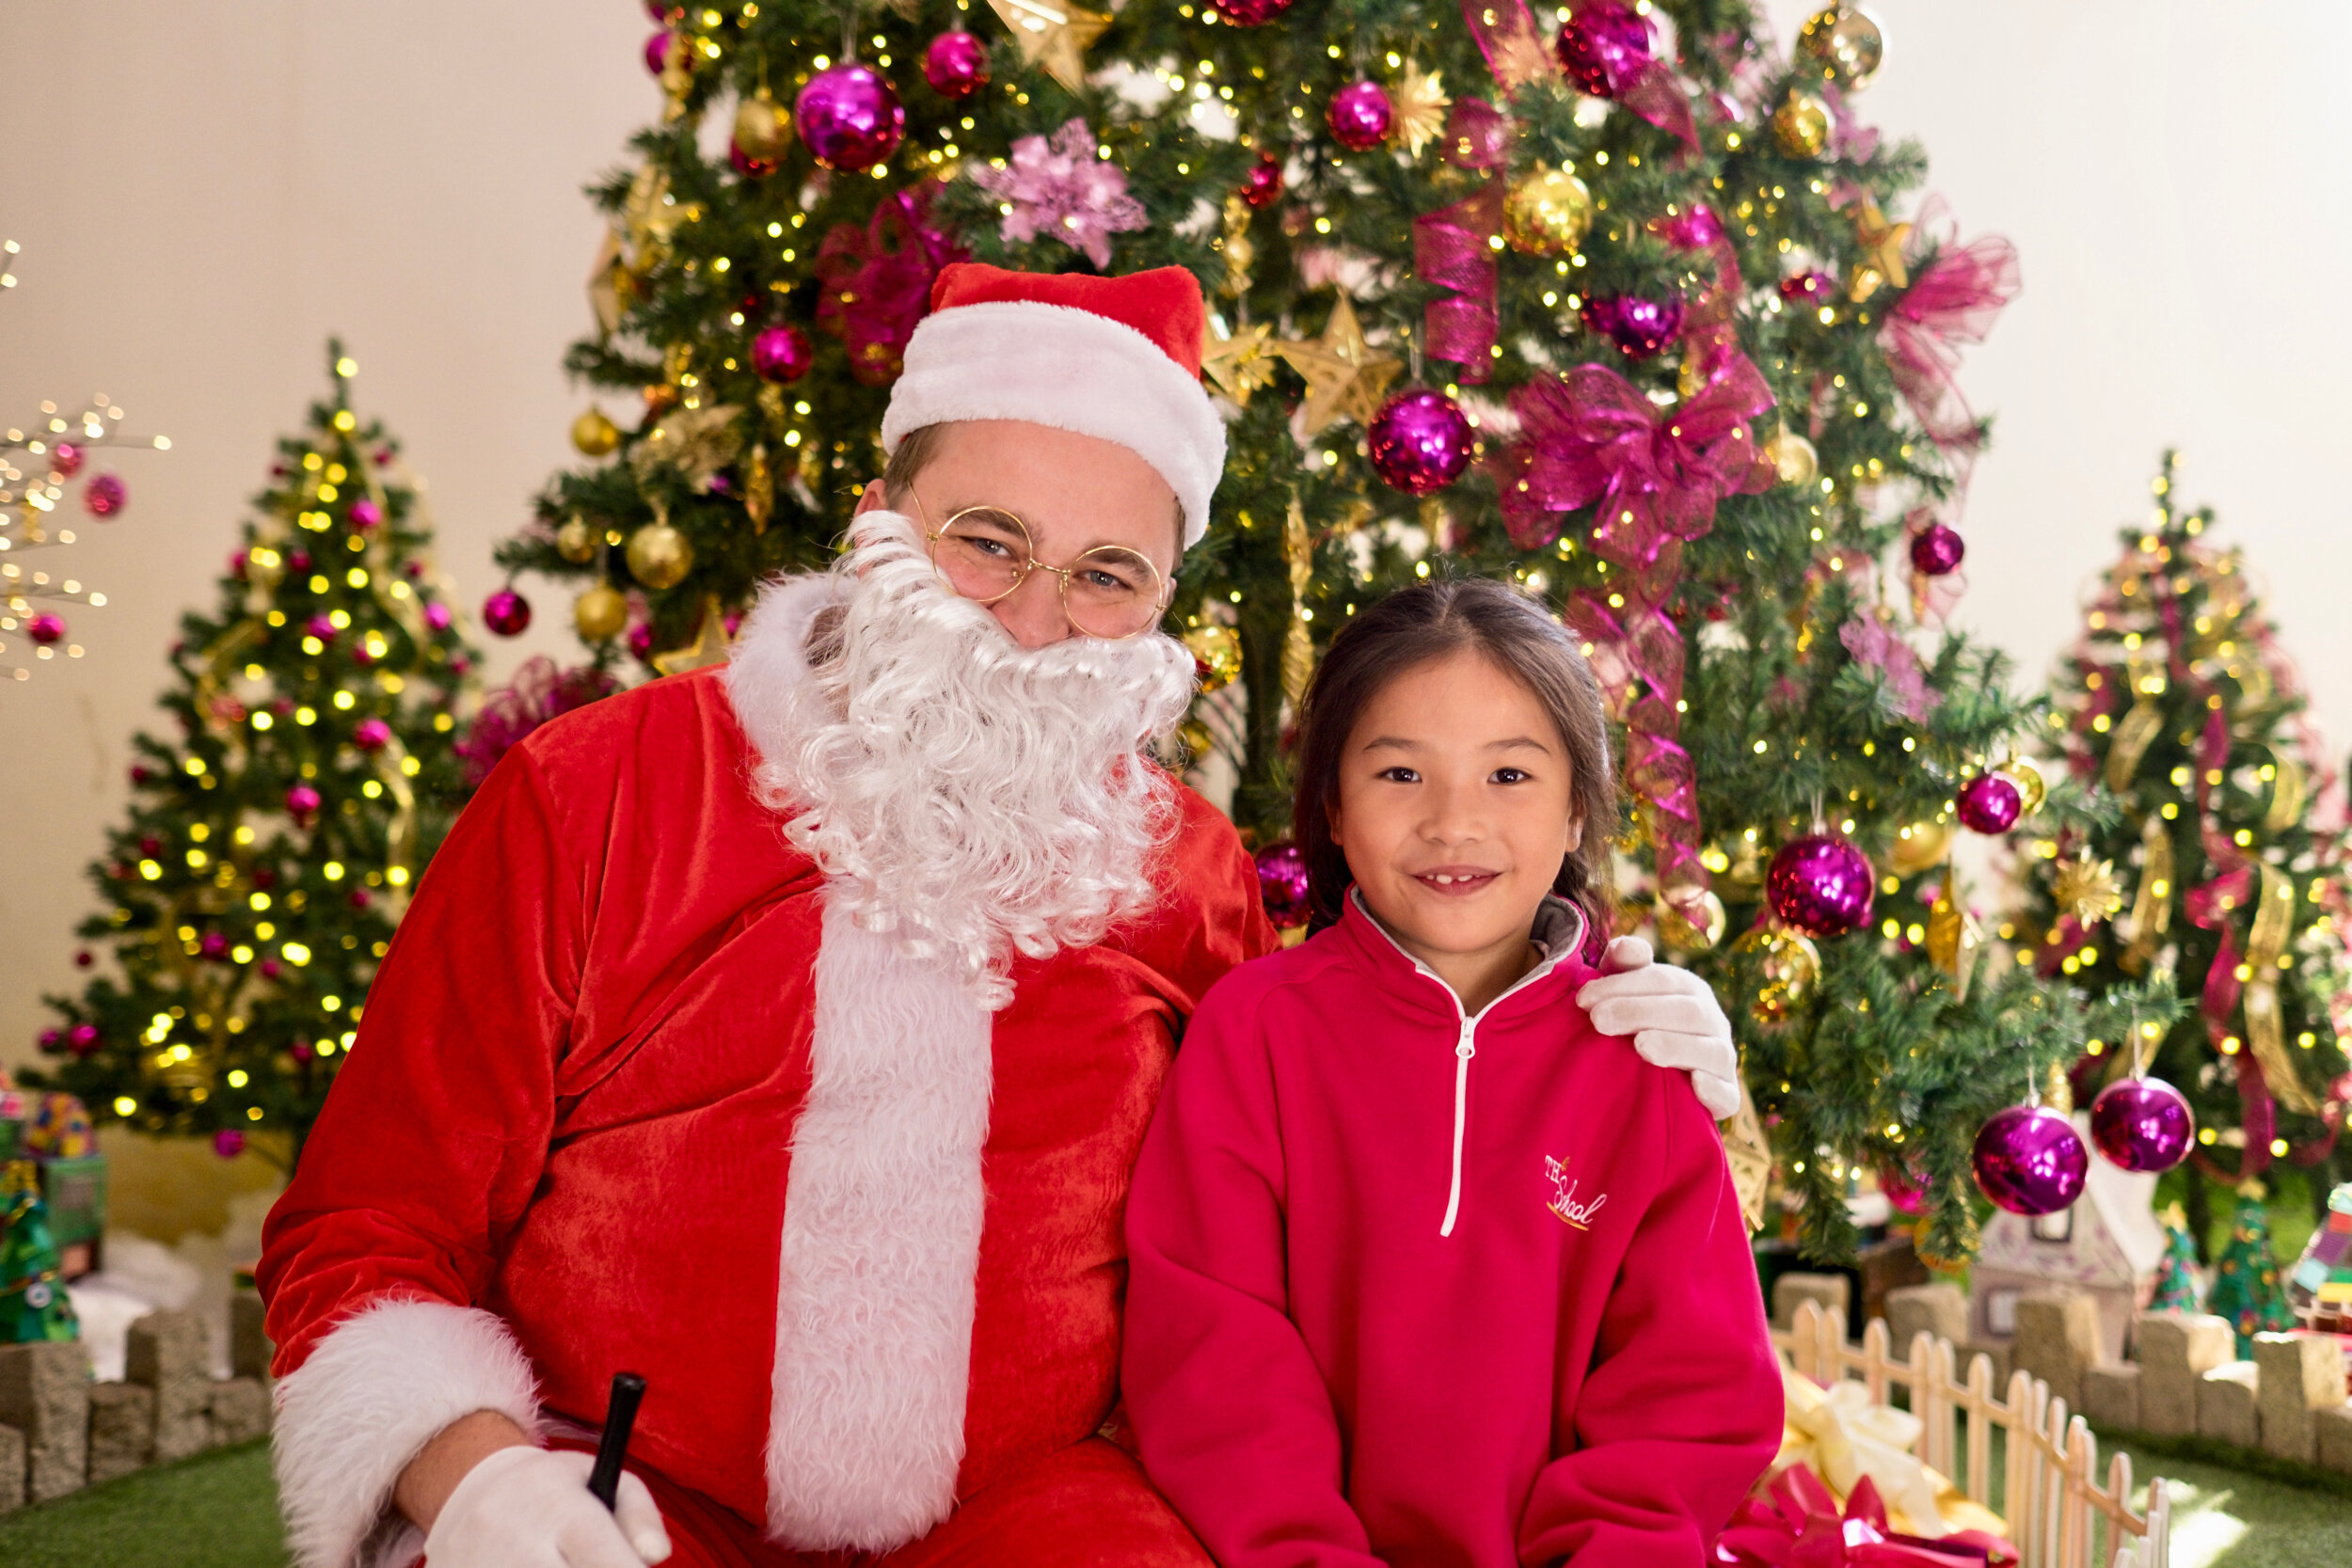 Photoshoot with Santa Clause-522.jpg